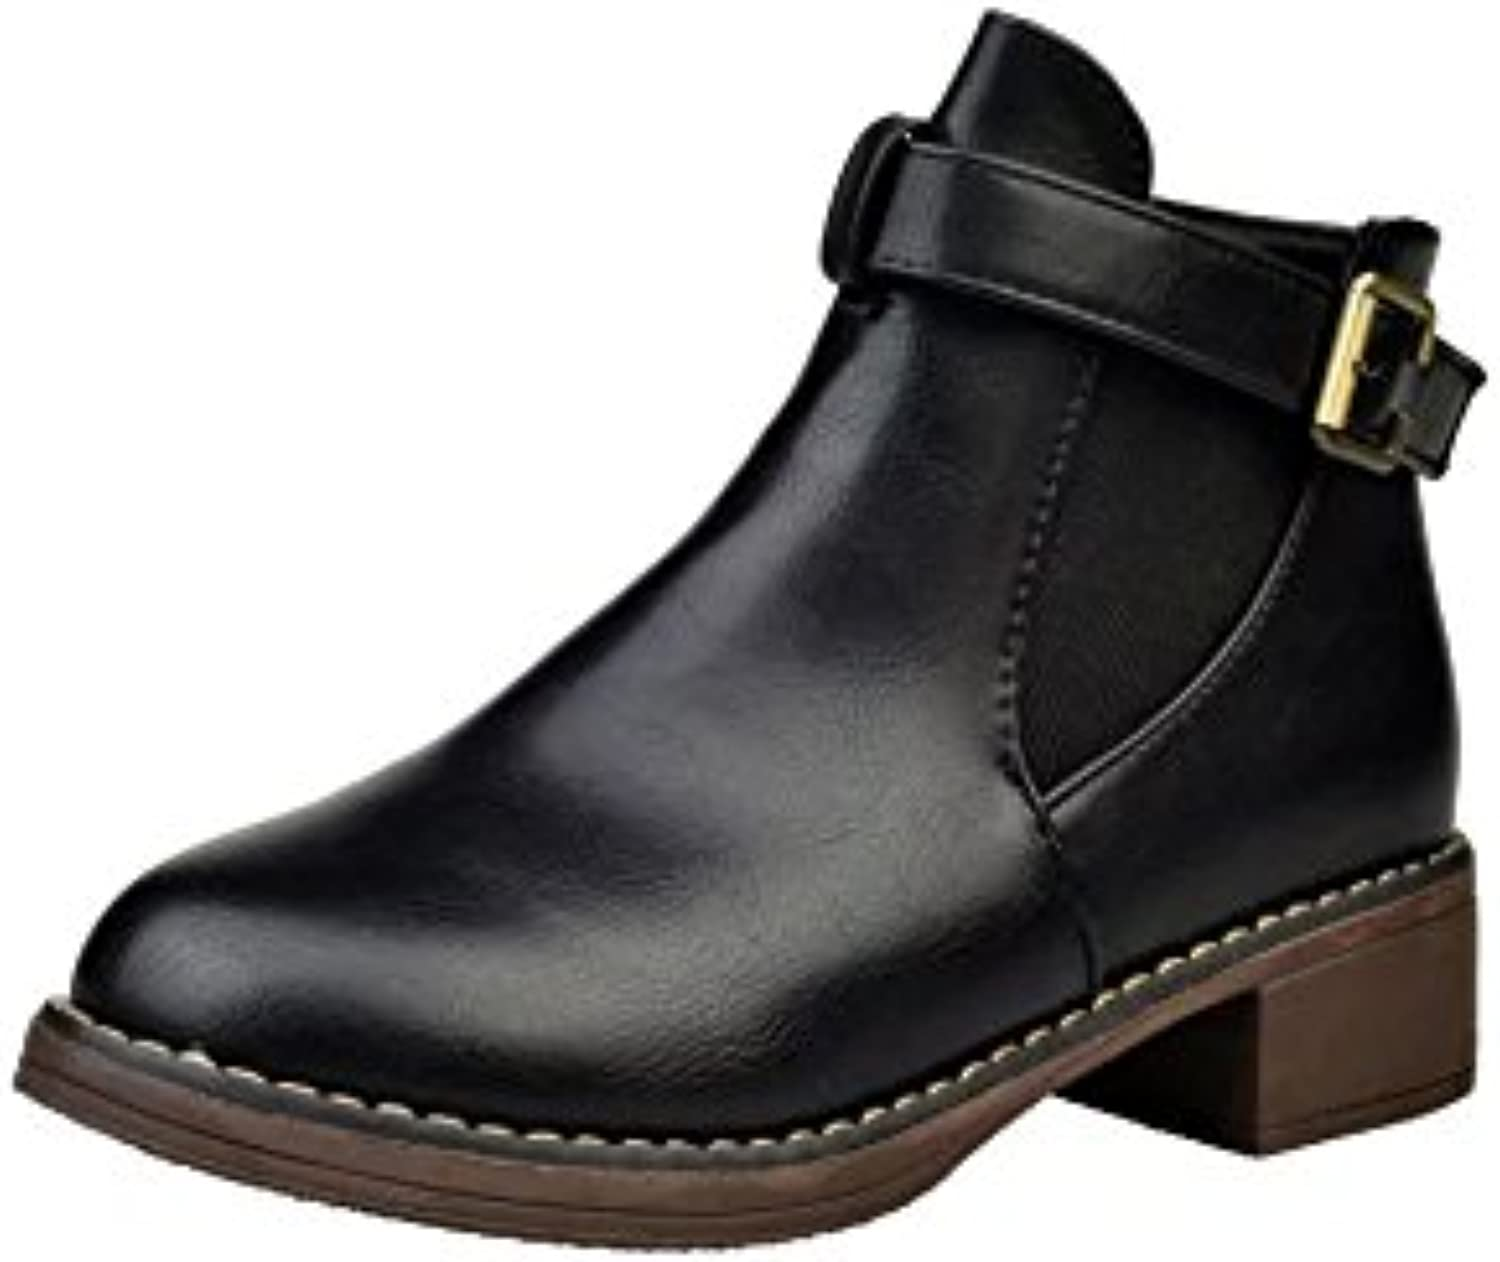 WYMBS Women's shoes Rough with Round Head Belt Buckle Short Boots